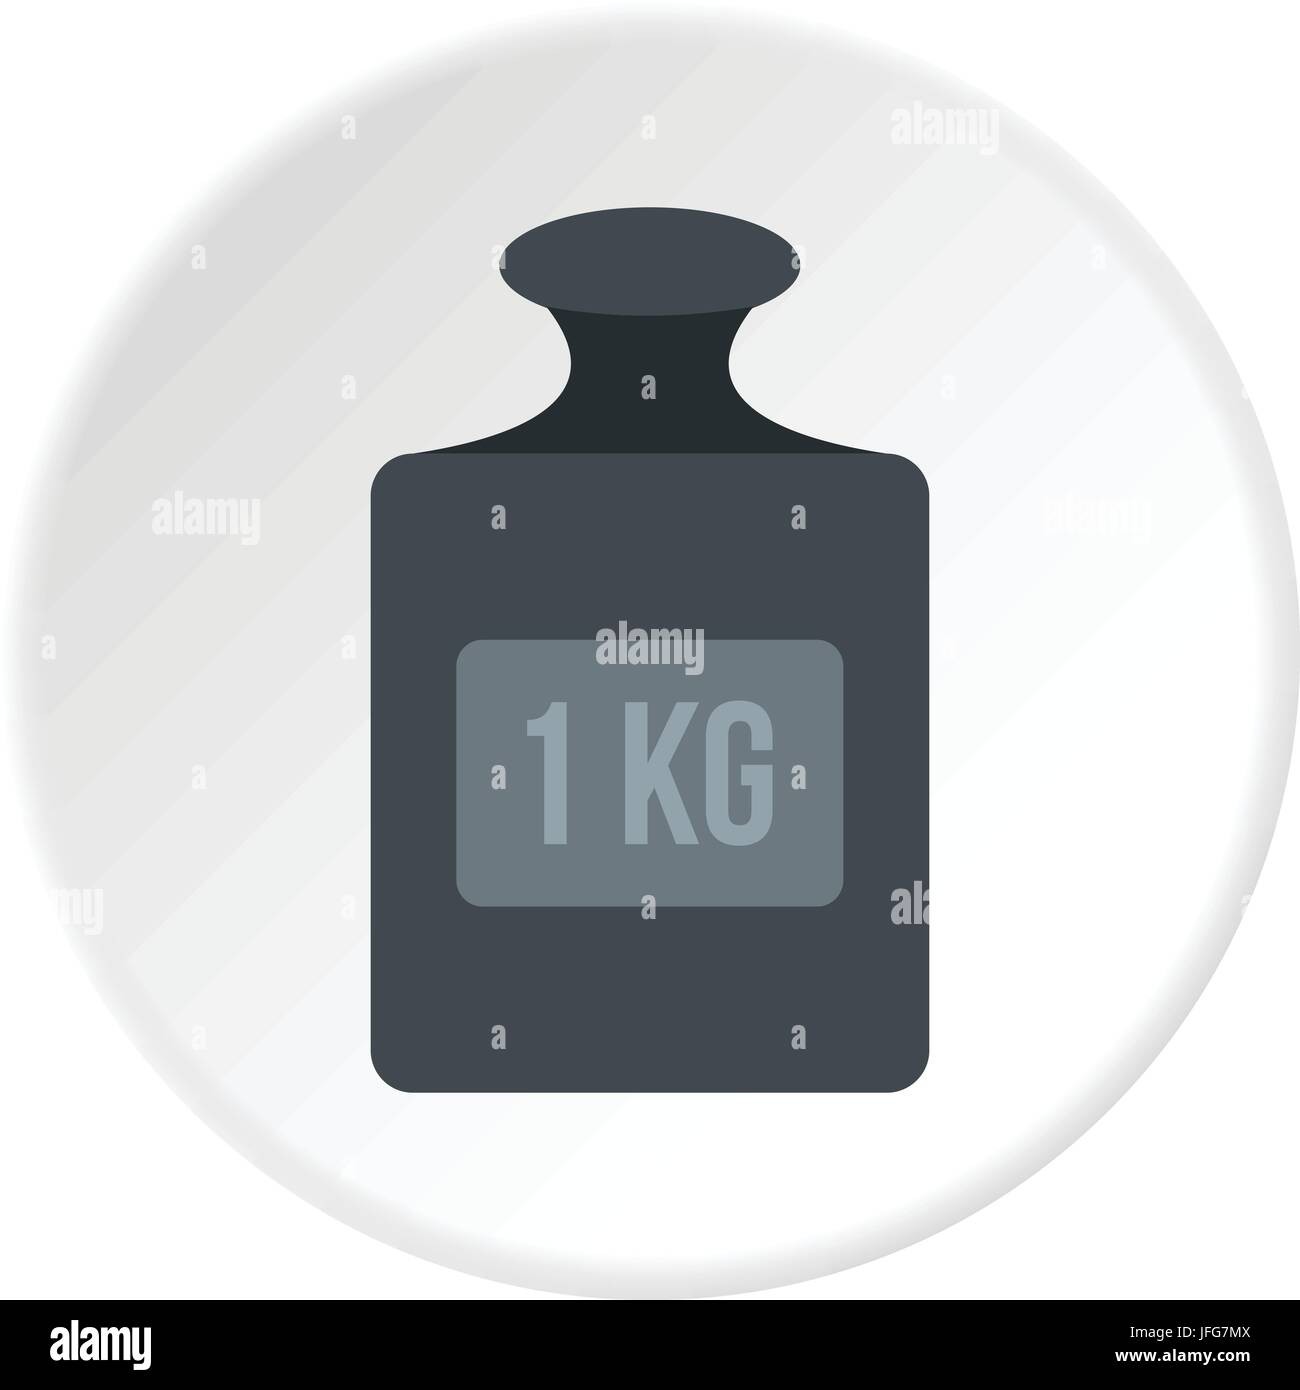 Weight 1 kg icon circle - Stock Image